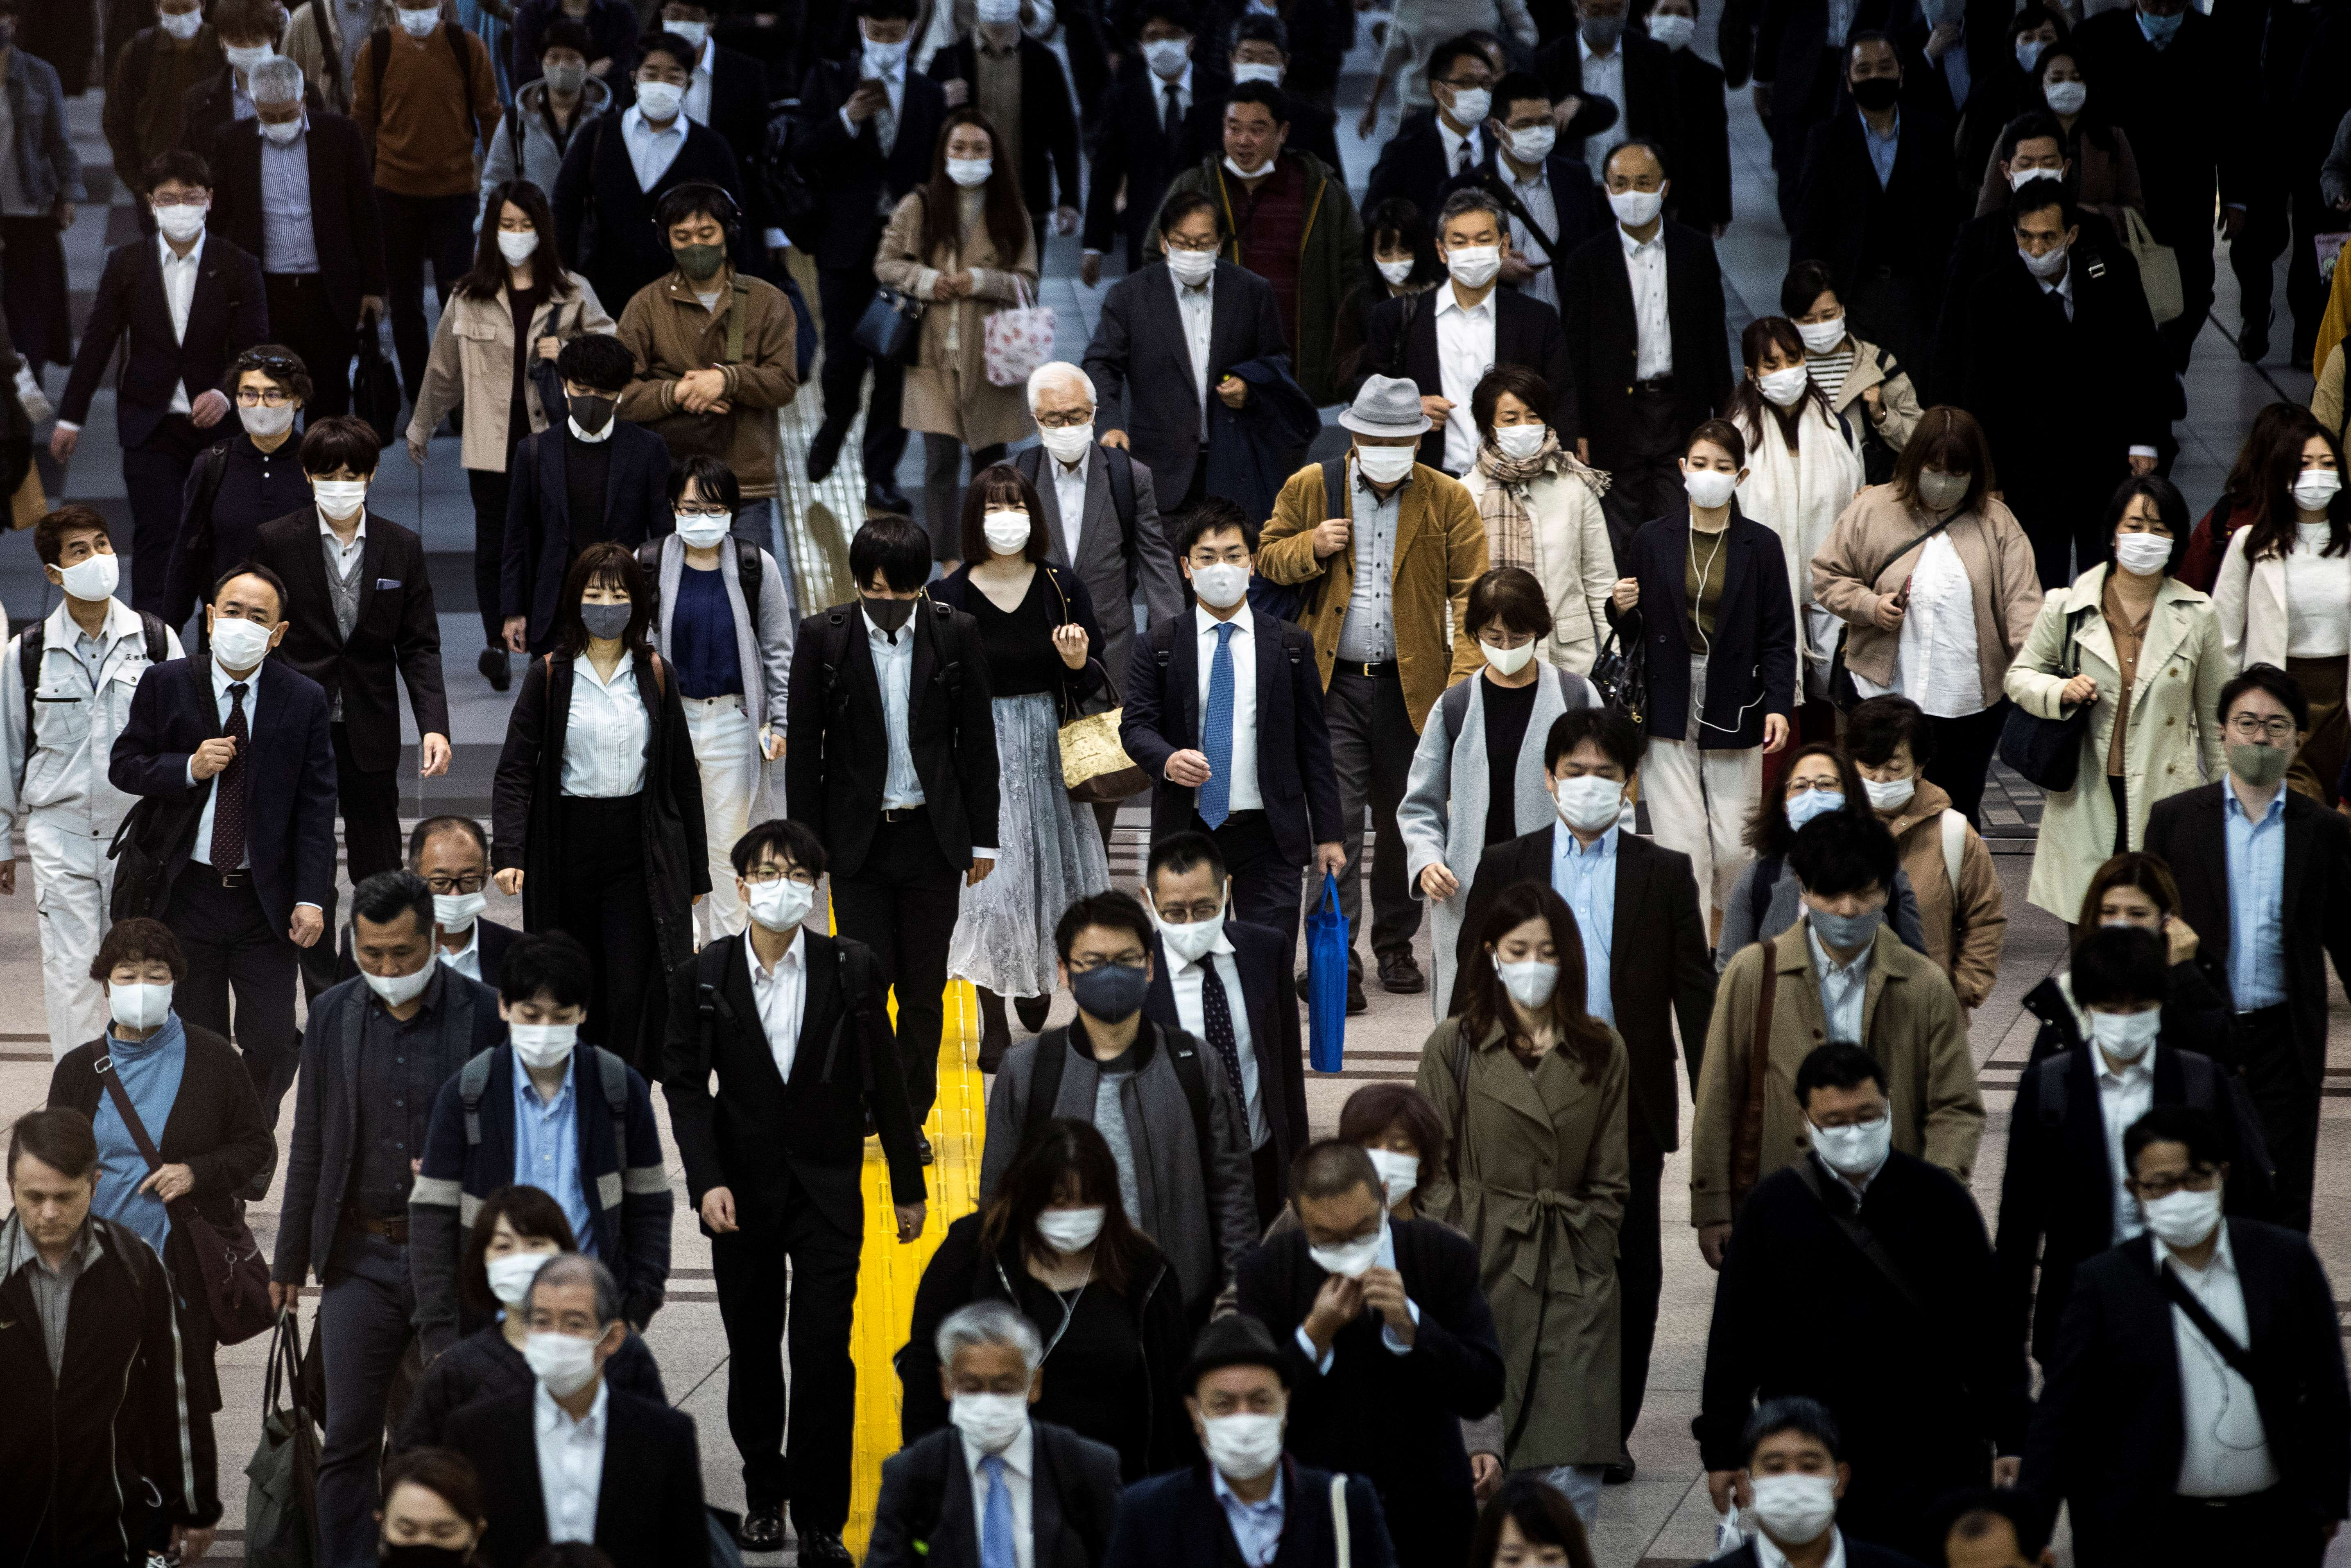 Japanese experts suggest stronger measures needed to combat virus surge